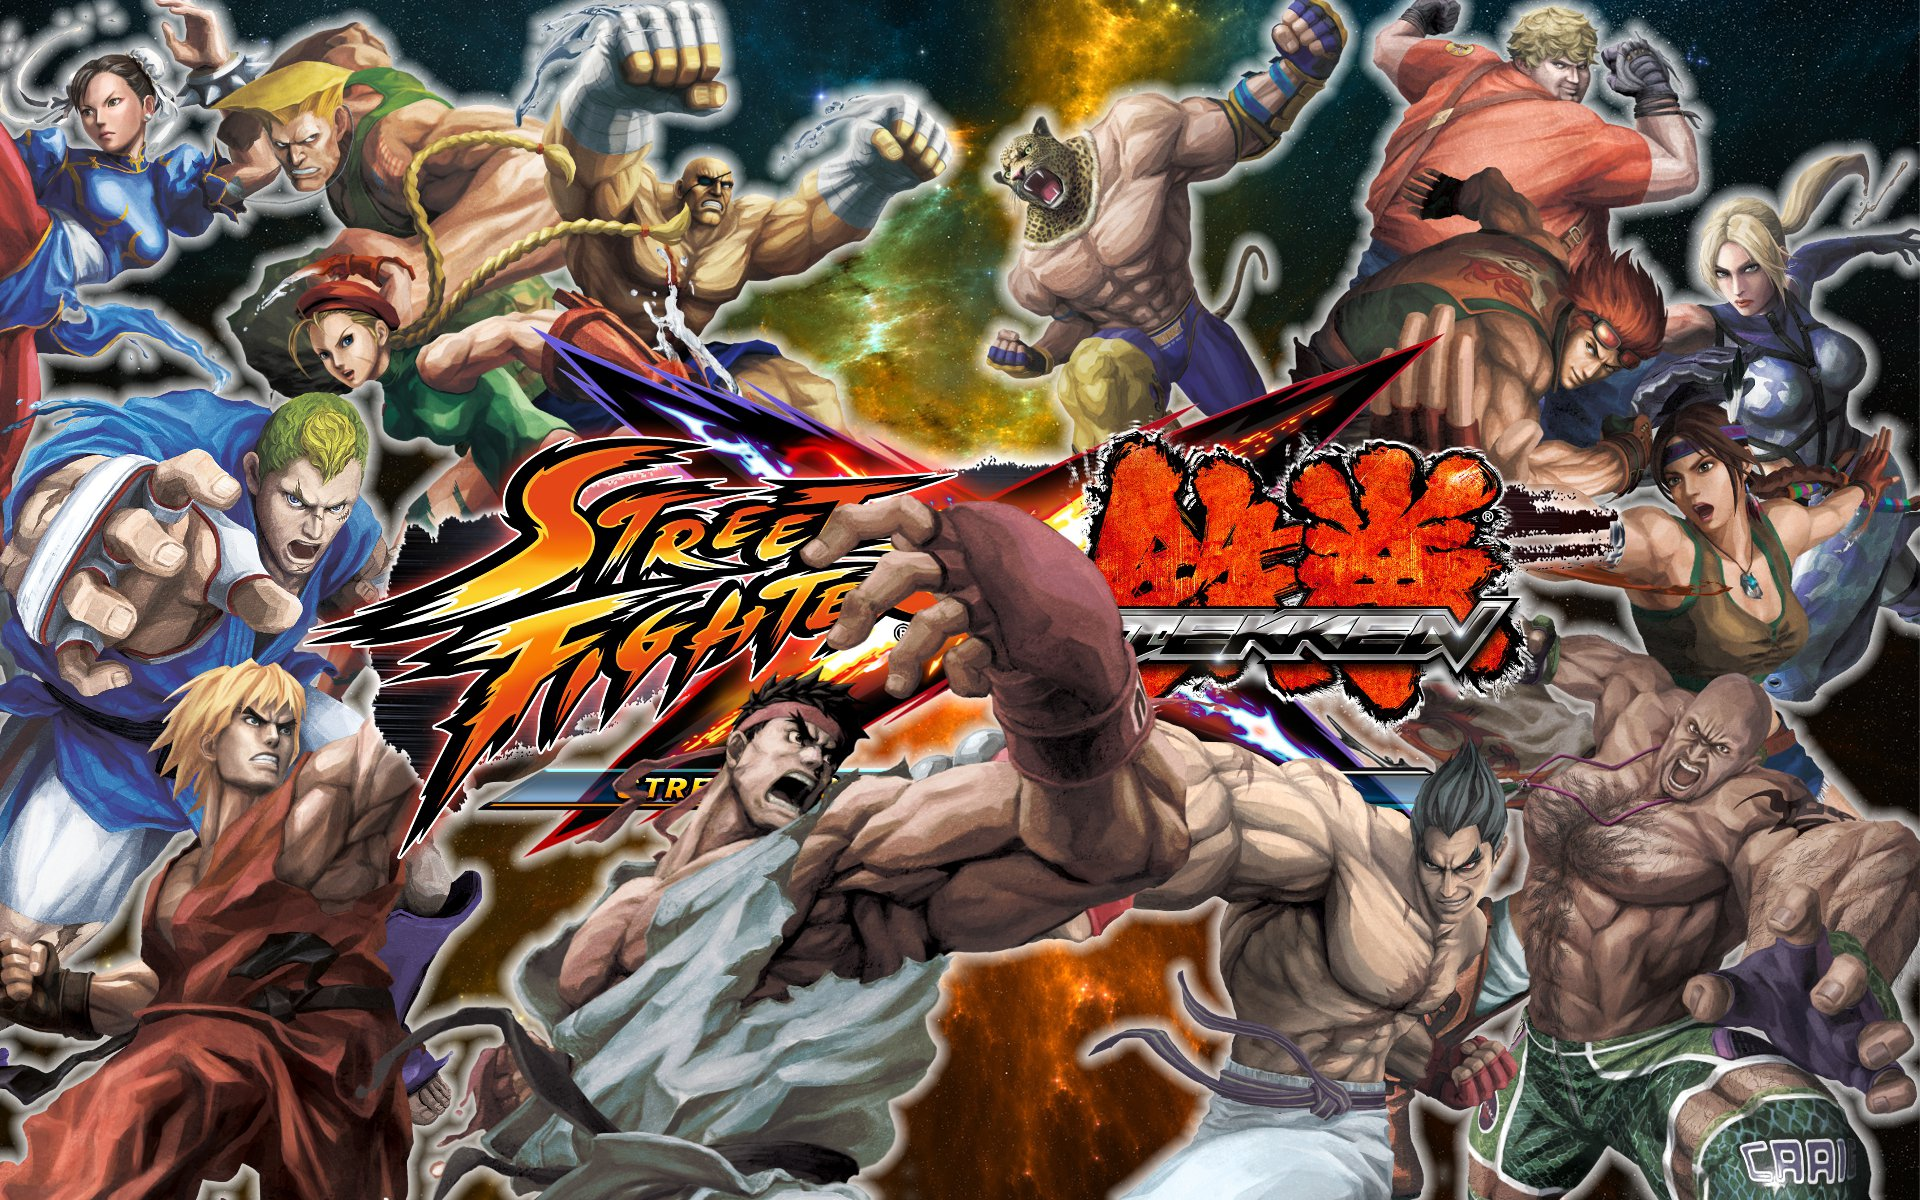 Street Fighter X Tekken telecharger gratuit de PC et Torrent